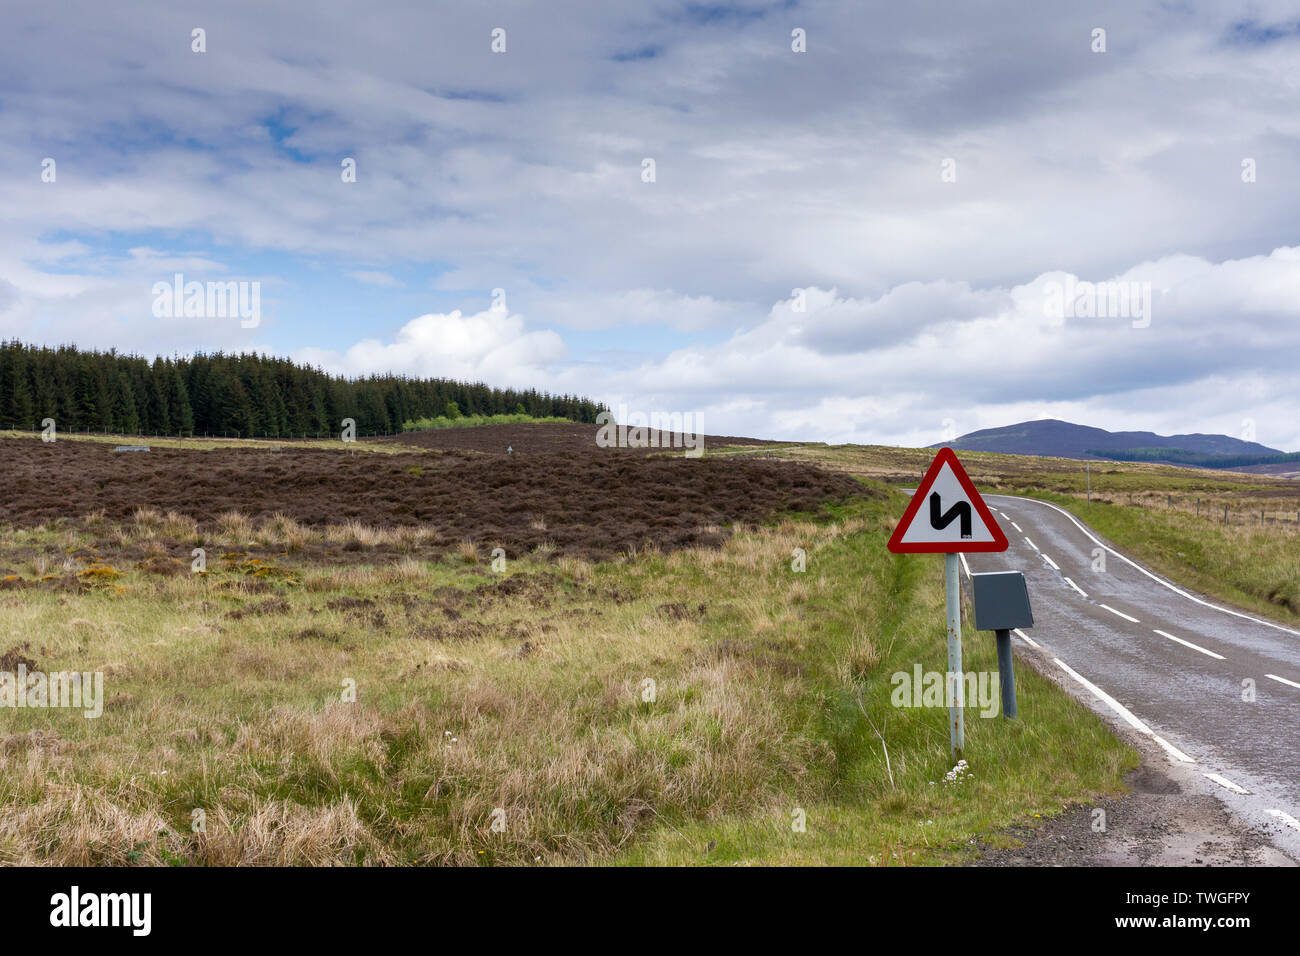 Double bend red triangle warning sign on the A924 road in Perthshire, Scotland, UK - Stock Image